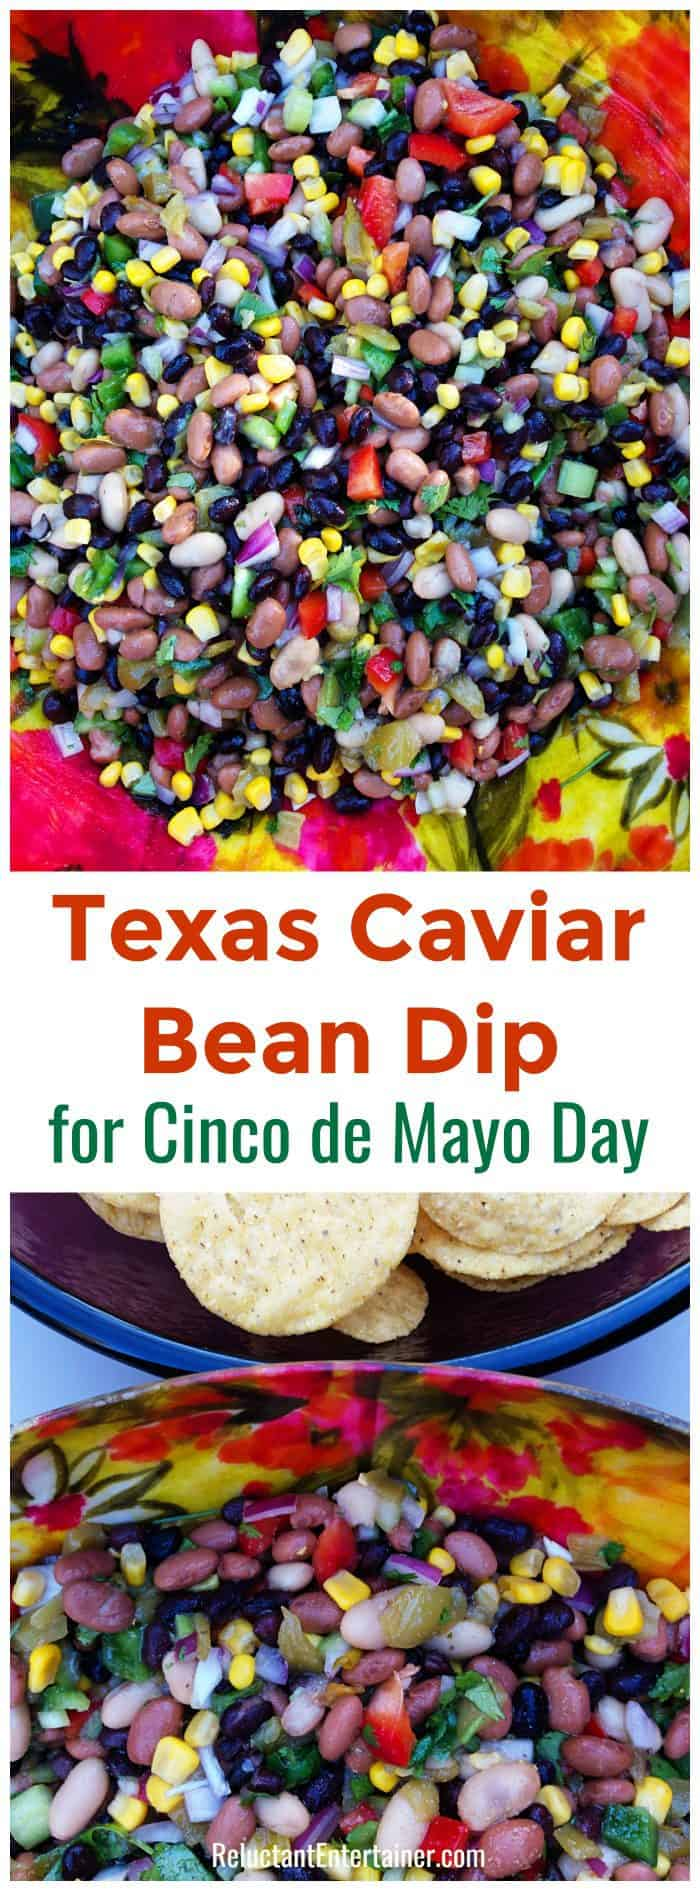 Texas Caviar Bean Dip for Cinco de Mayo Day